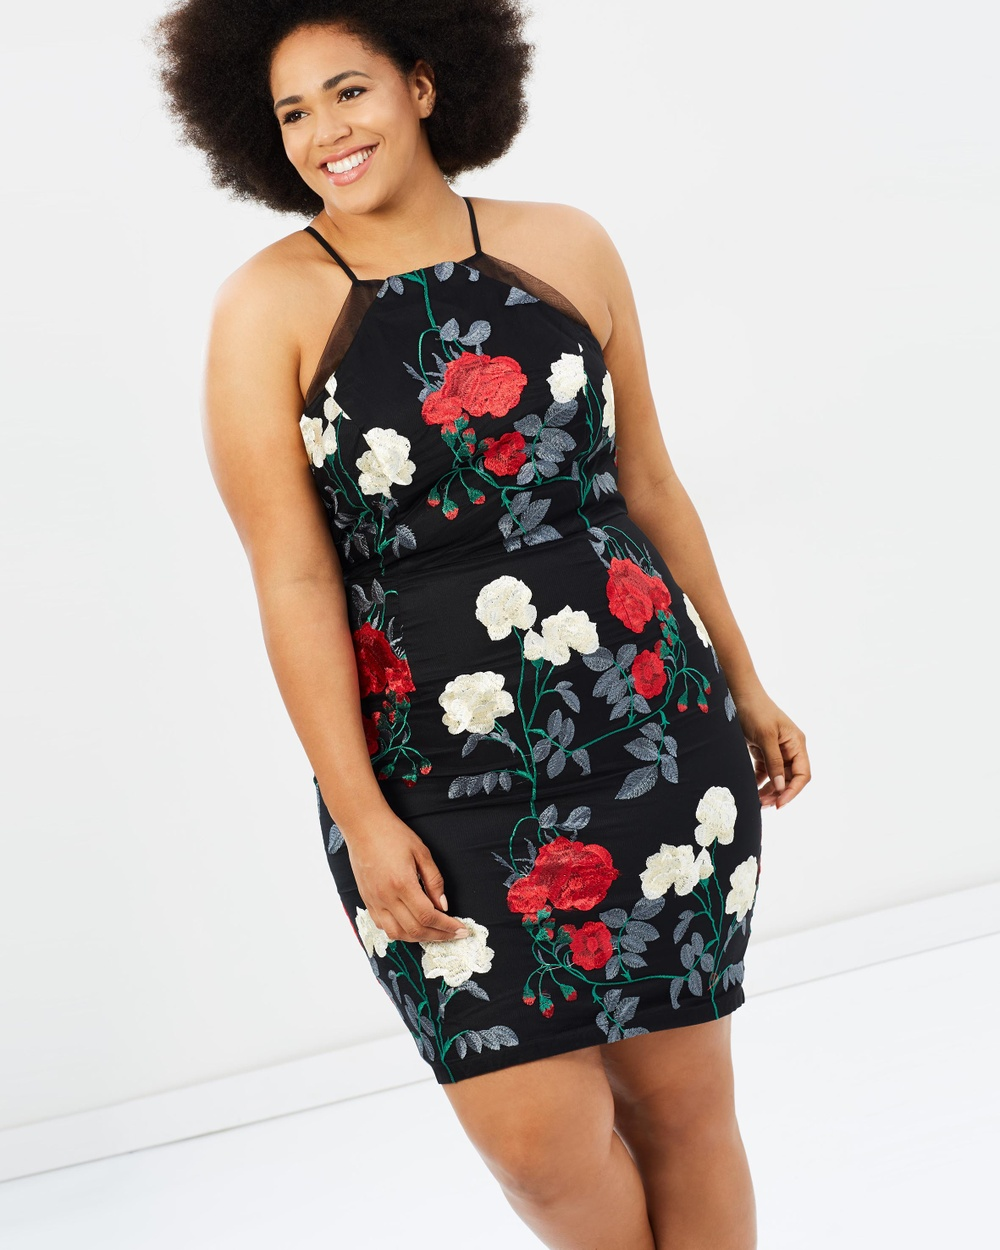 Chi Chi Curve Robin Dress Dresses Black Robin Dress